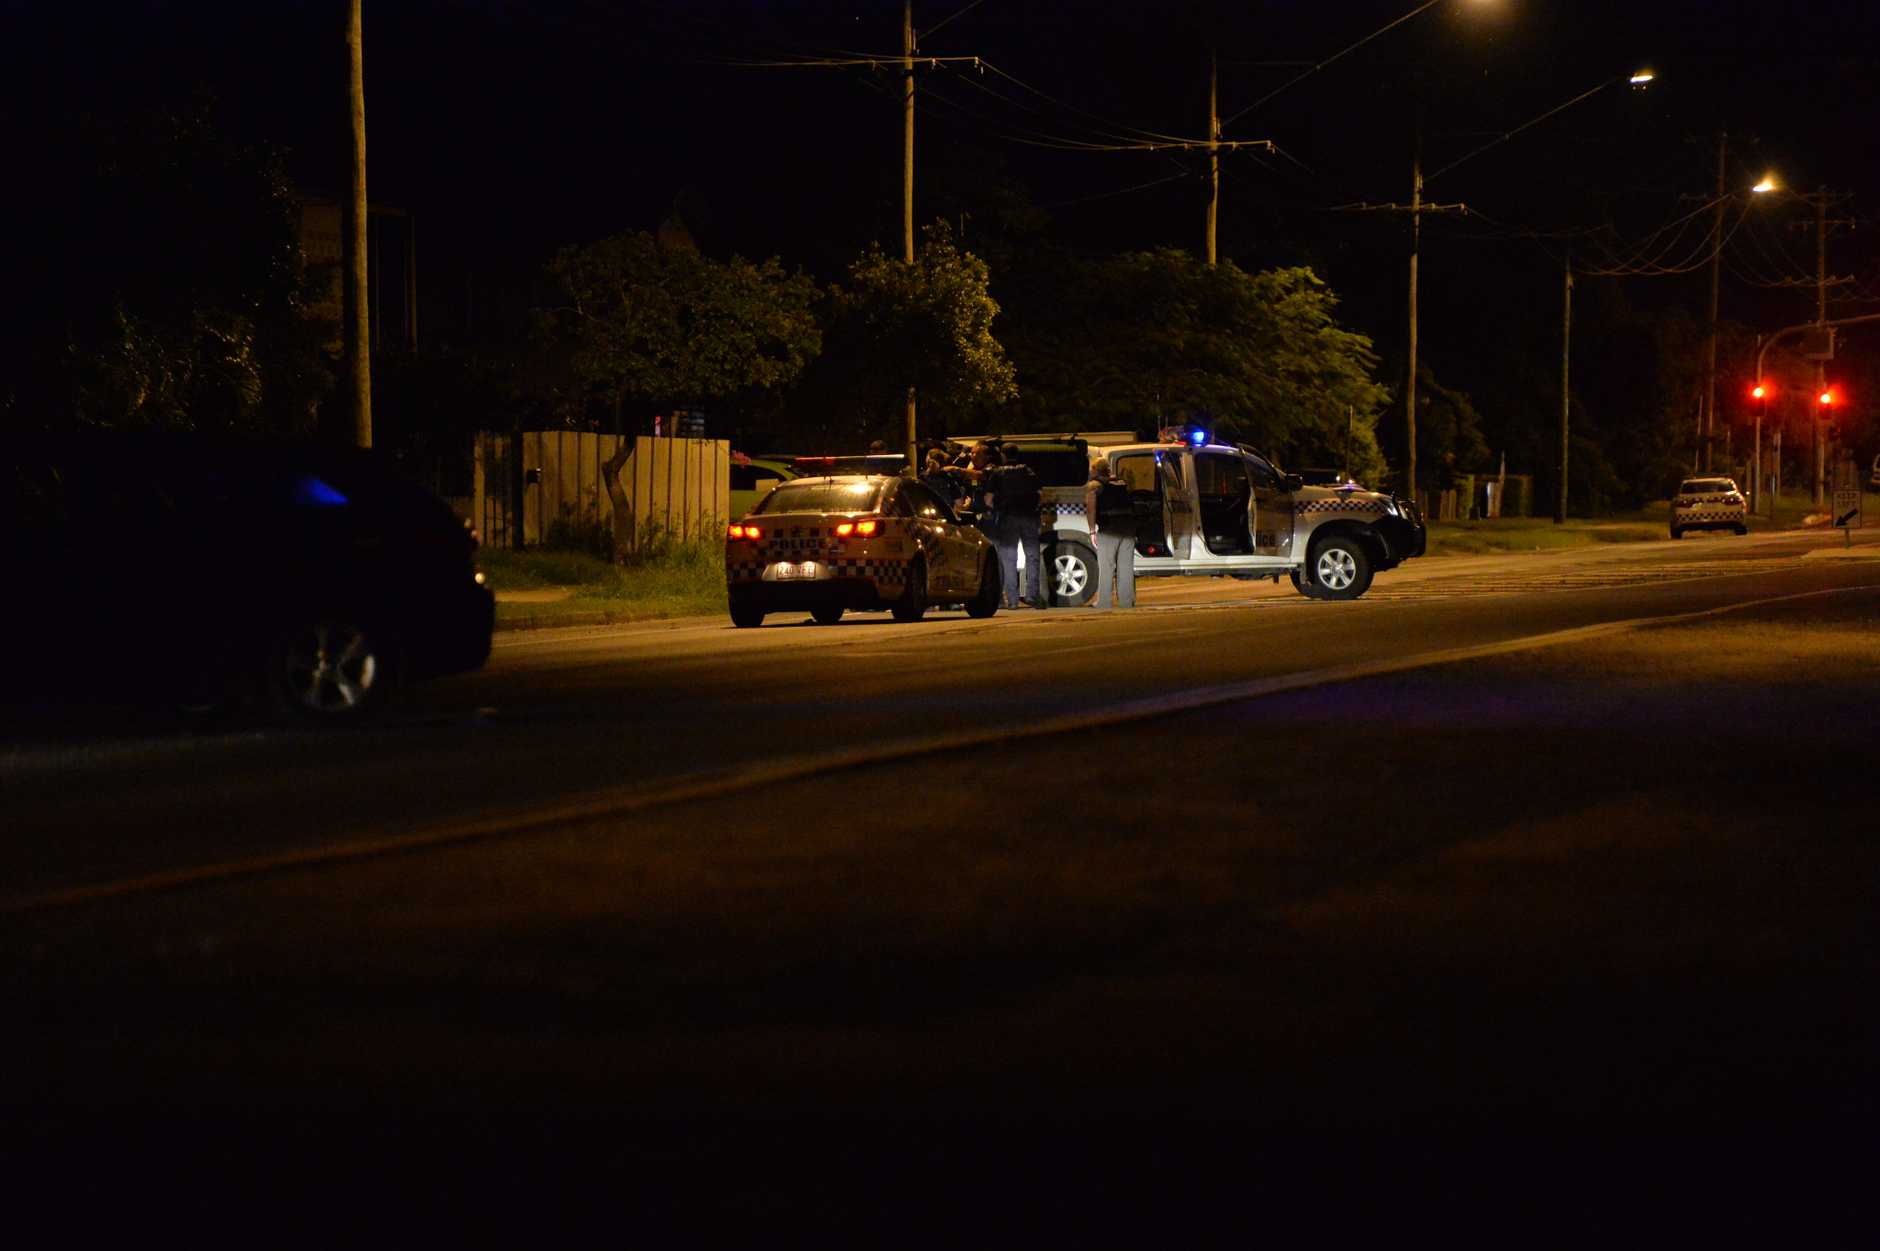 Police have blocked off paradise St after reports of a gunman held up in one of the homes